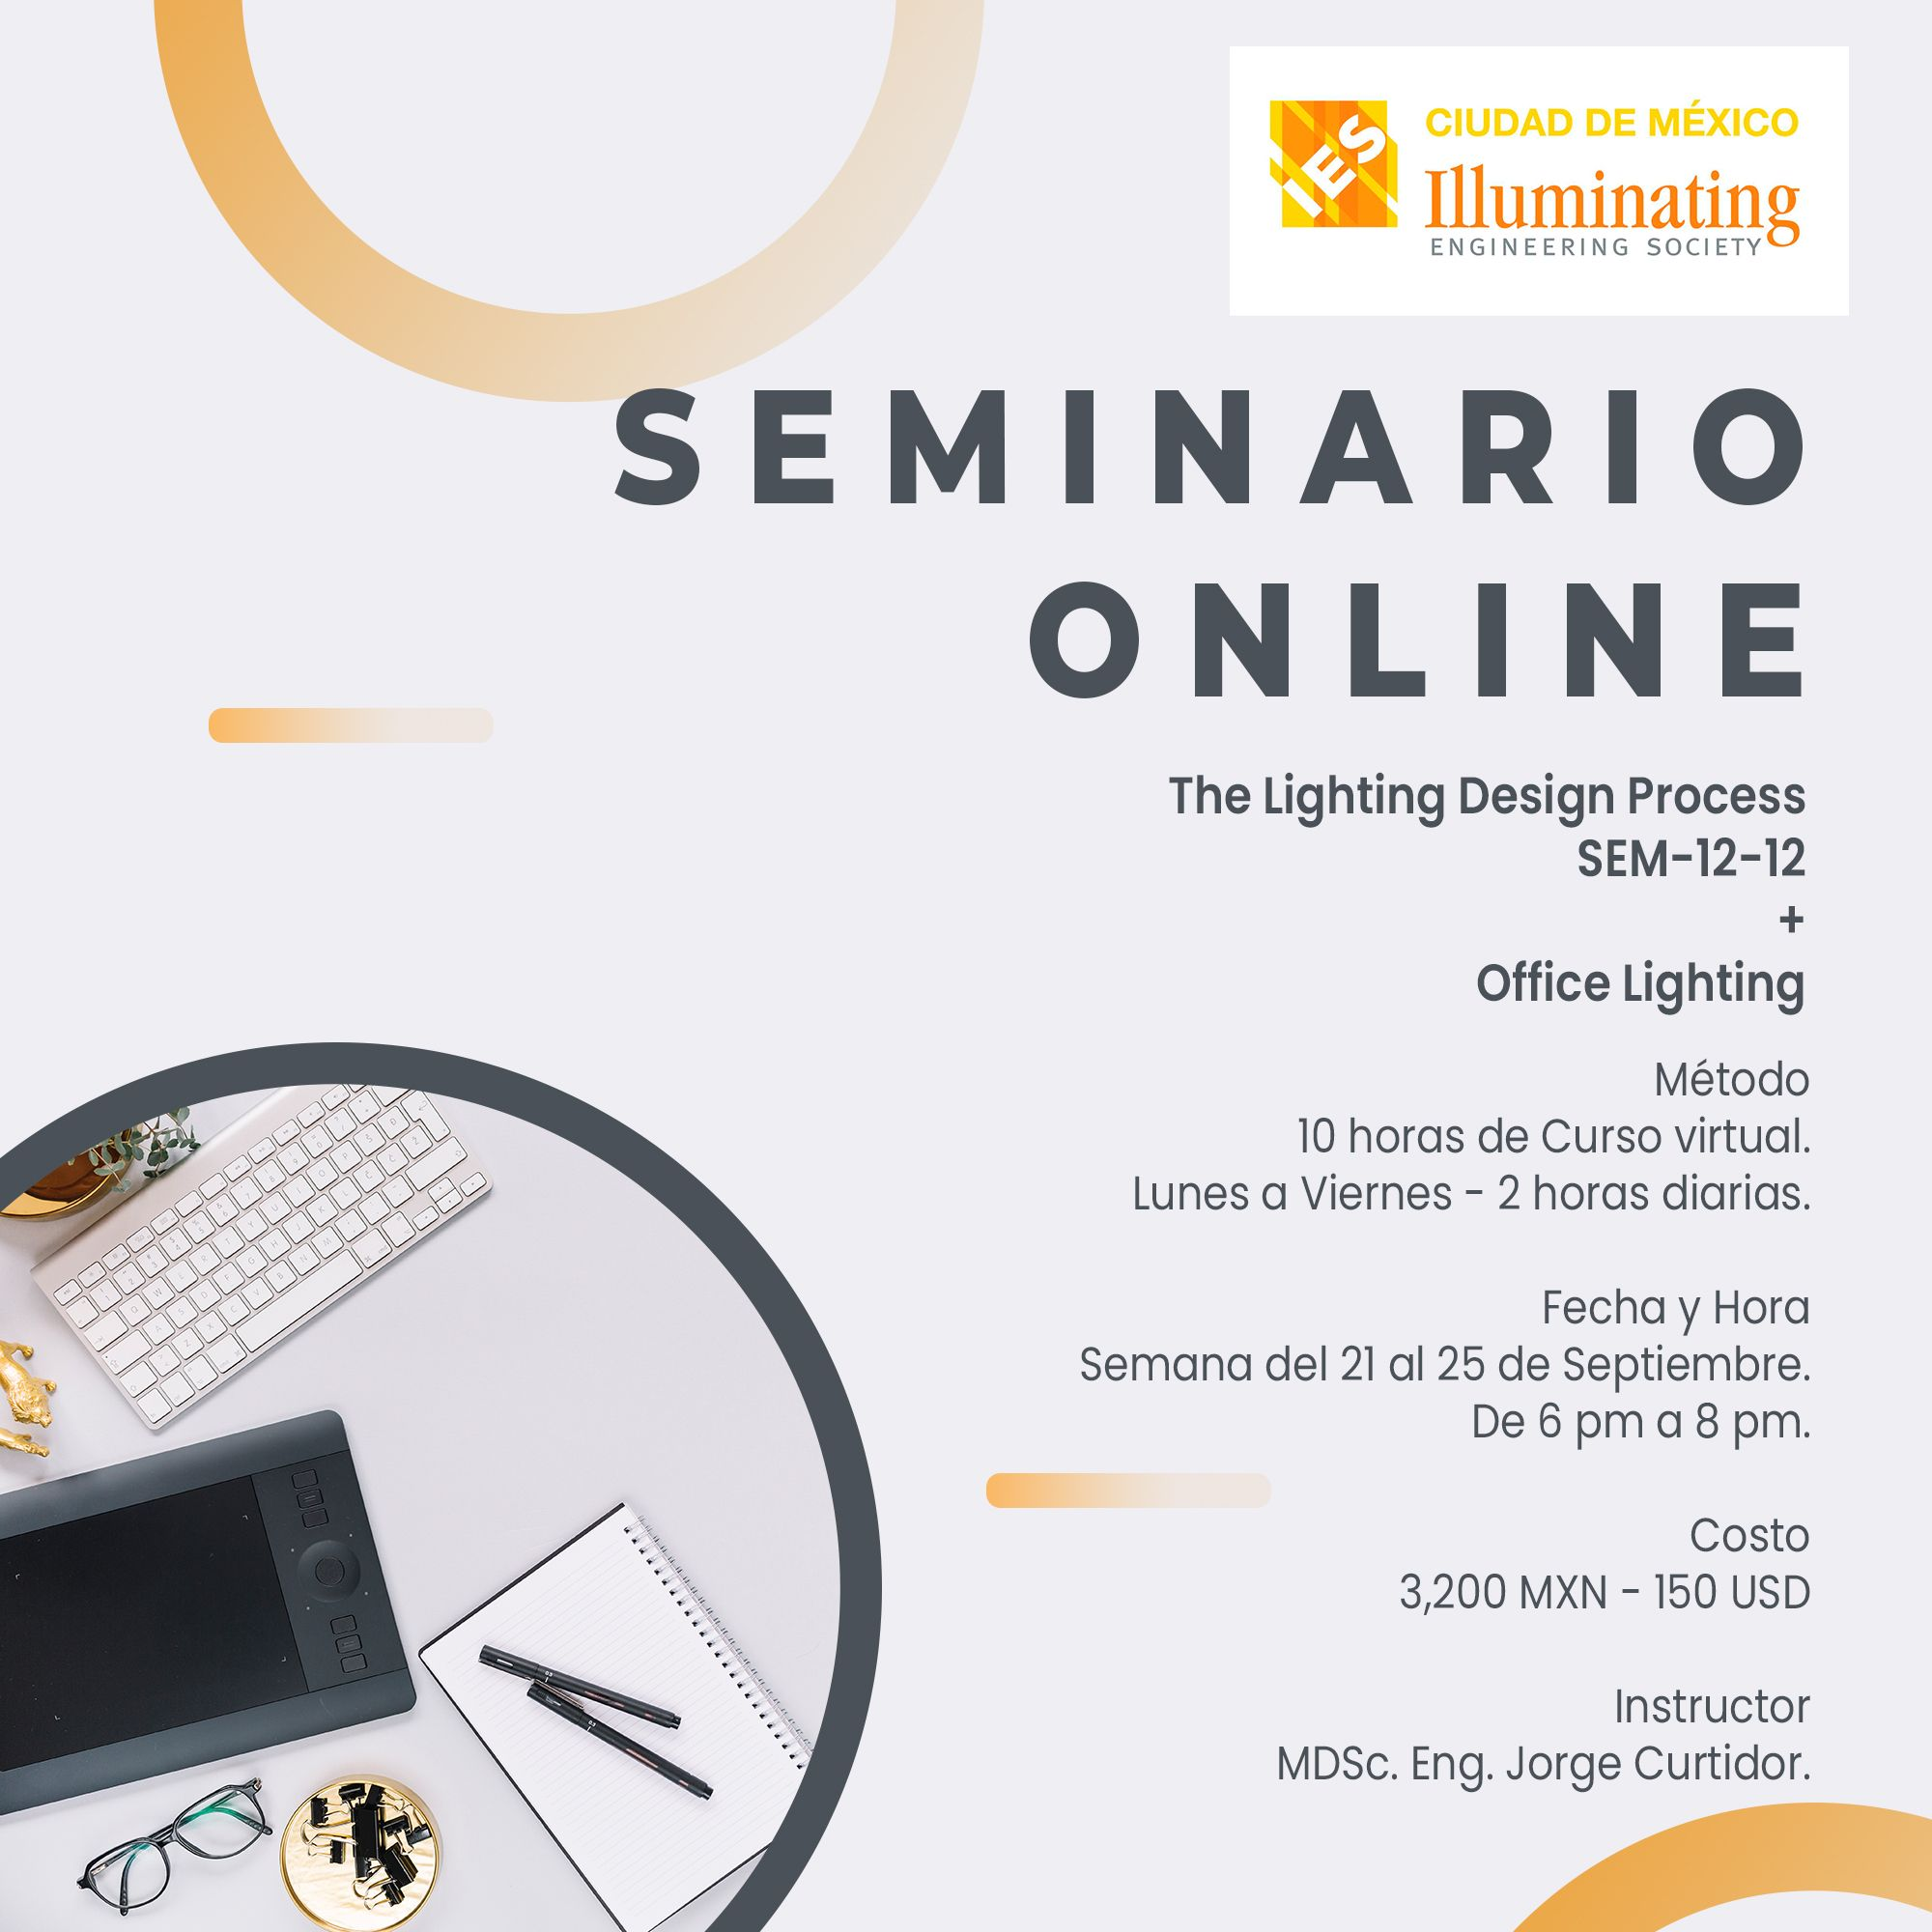 Nuevo Seminario Online - IES / The Lighting Design Process + Office Lighting